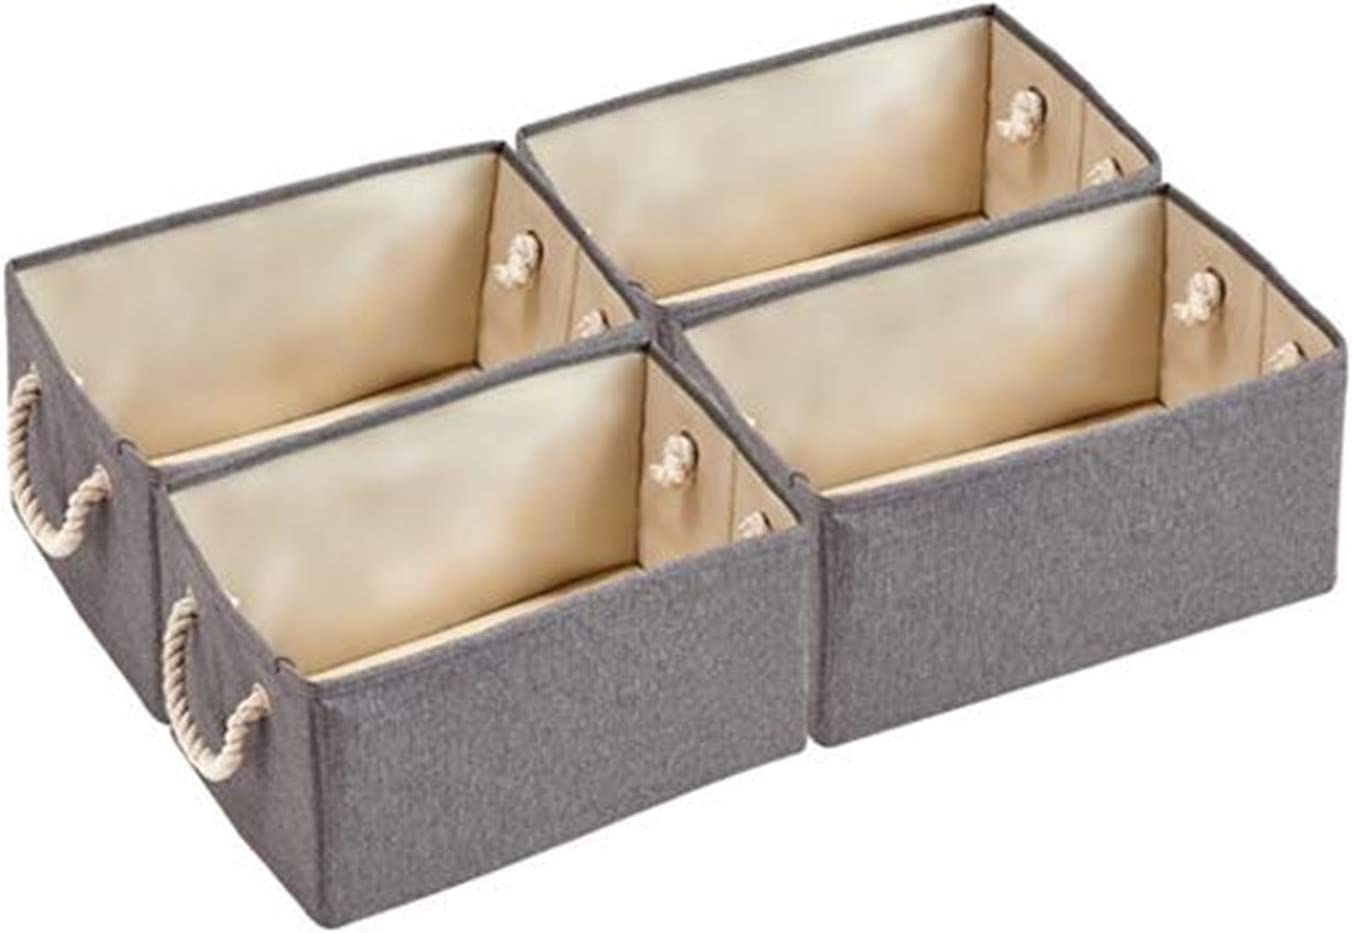 Shamdon Home Collection Collapsible Fabric Storage Cubes Organizer Closet Storage Bins with Cotton Rope Handles, Decorative Storage Baskets, Rectangle,4-Pack,Gray